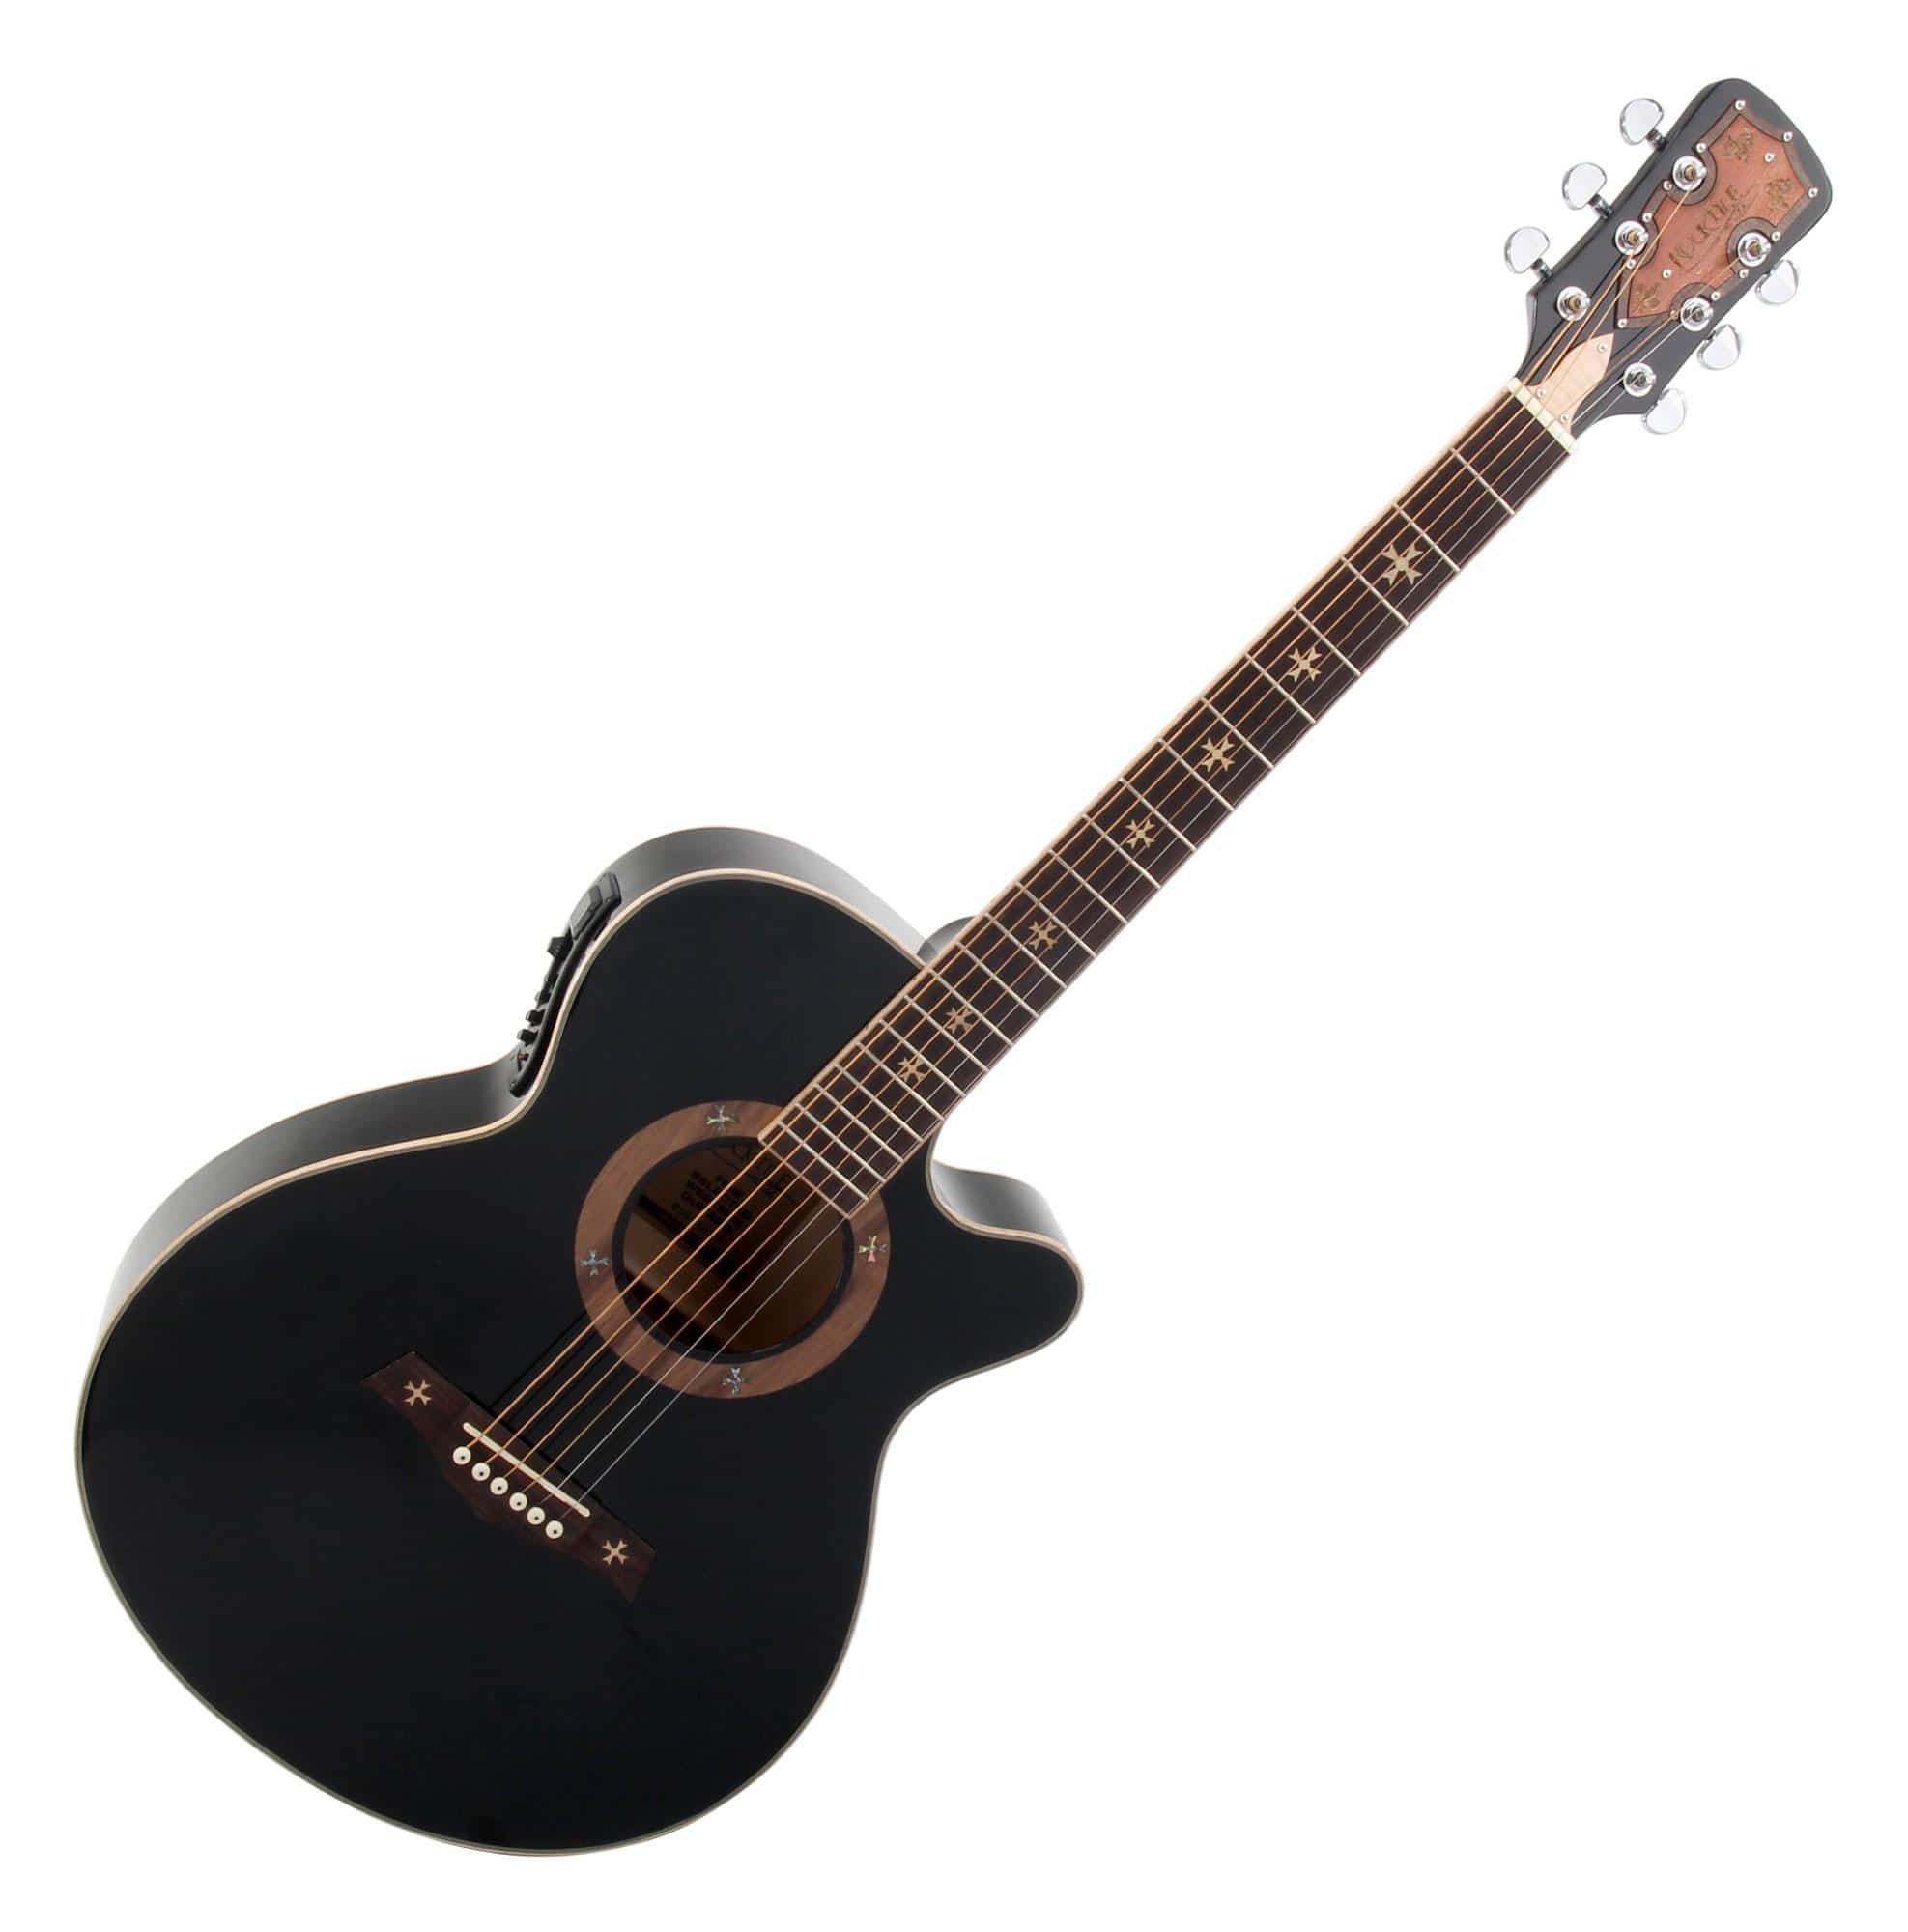 rocktile empire acoustic steel string guitar with pickup black kirstein music shop. Black Bedroom Furniture Sets. Home Design Ideas